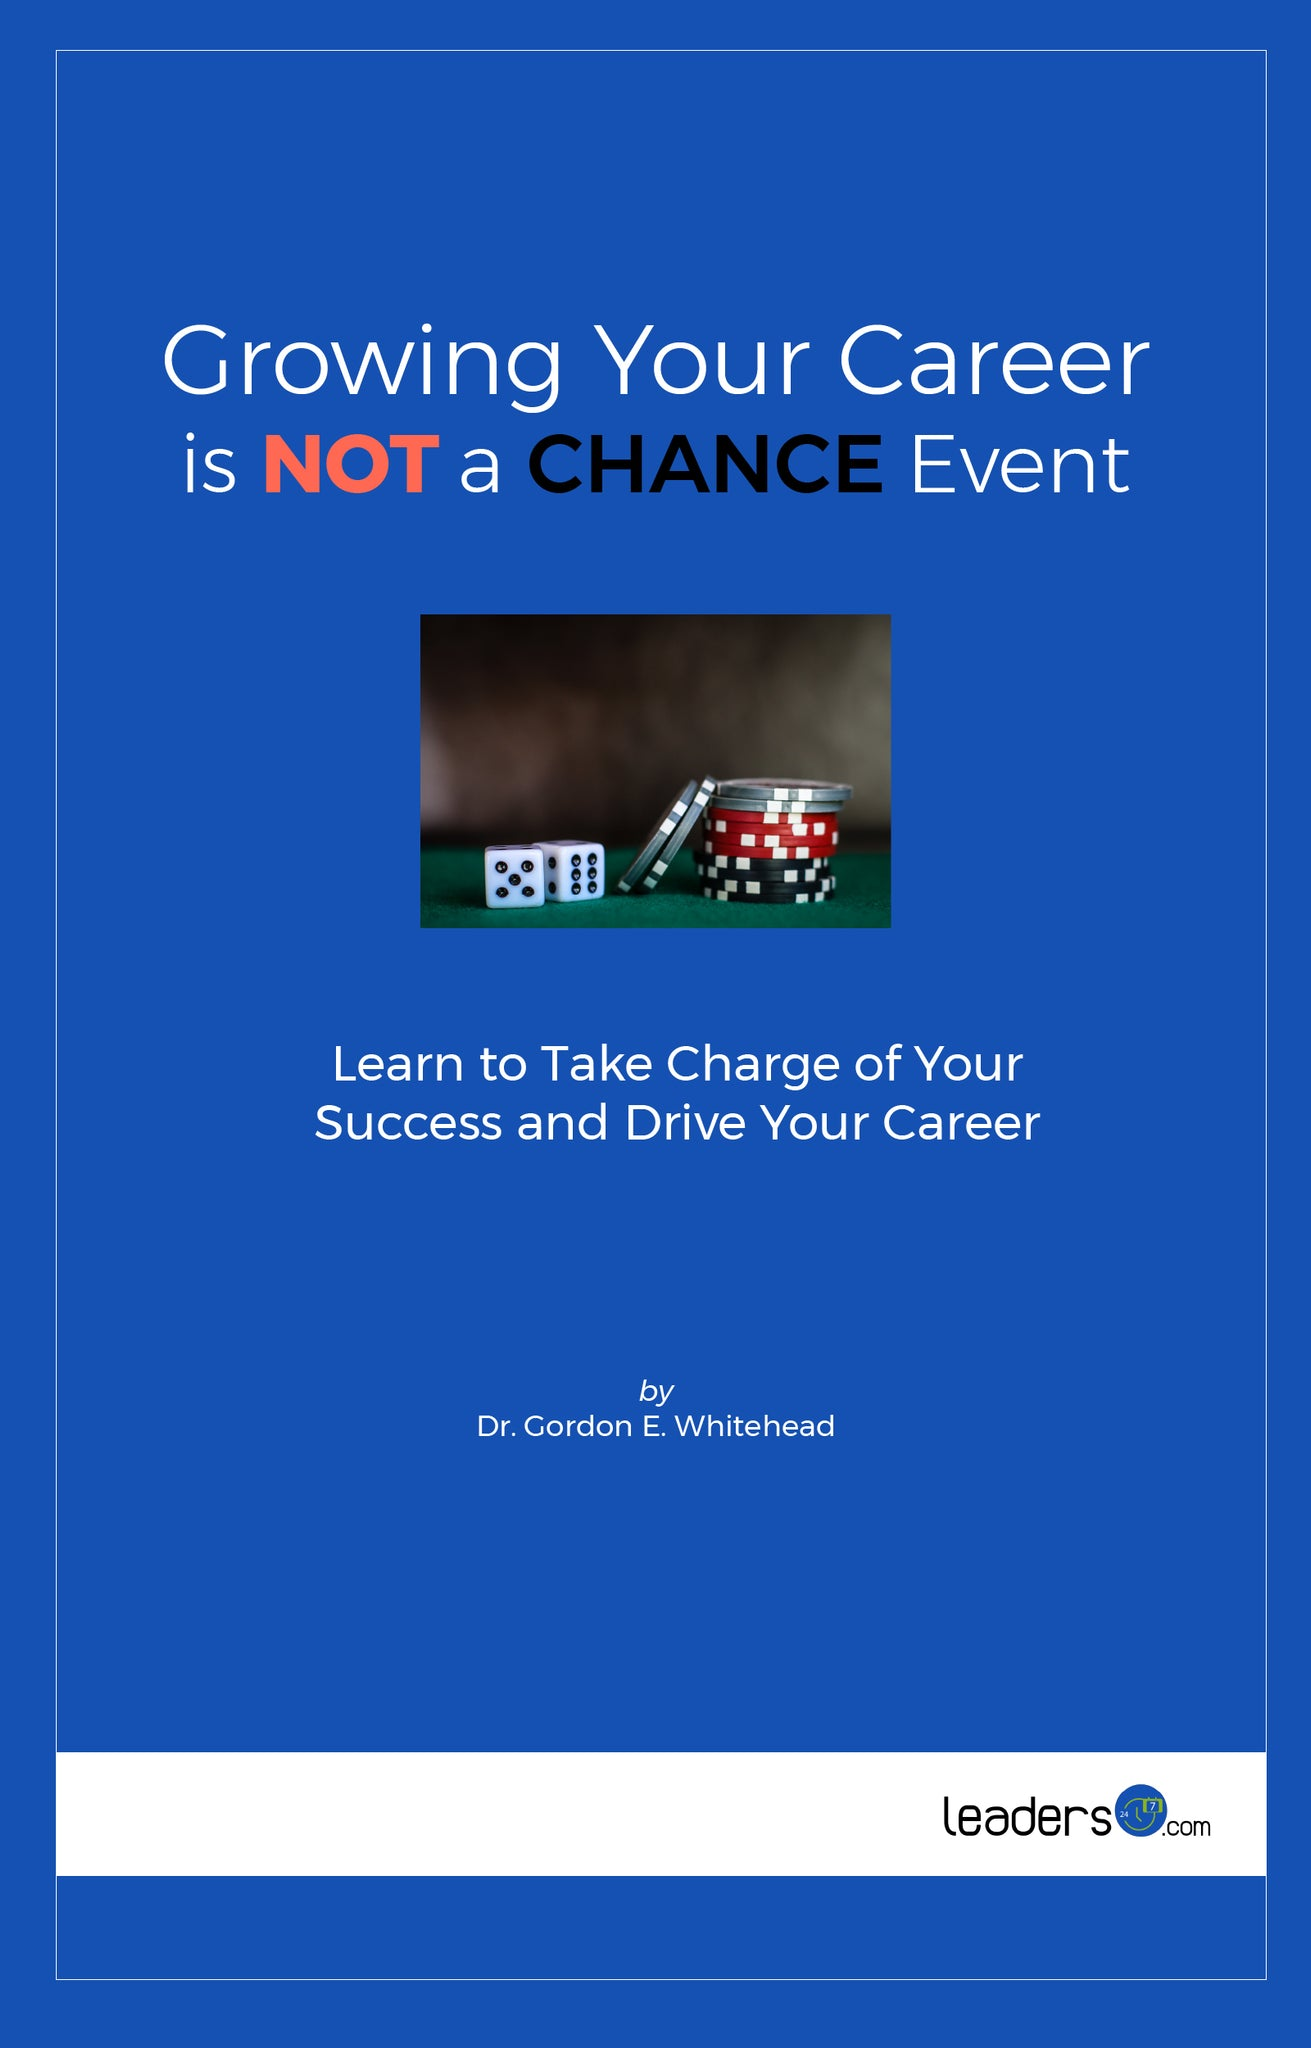 Your Career is NOT a Chance Event